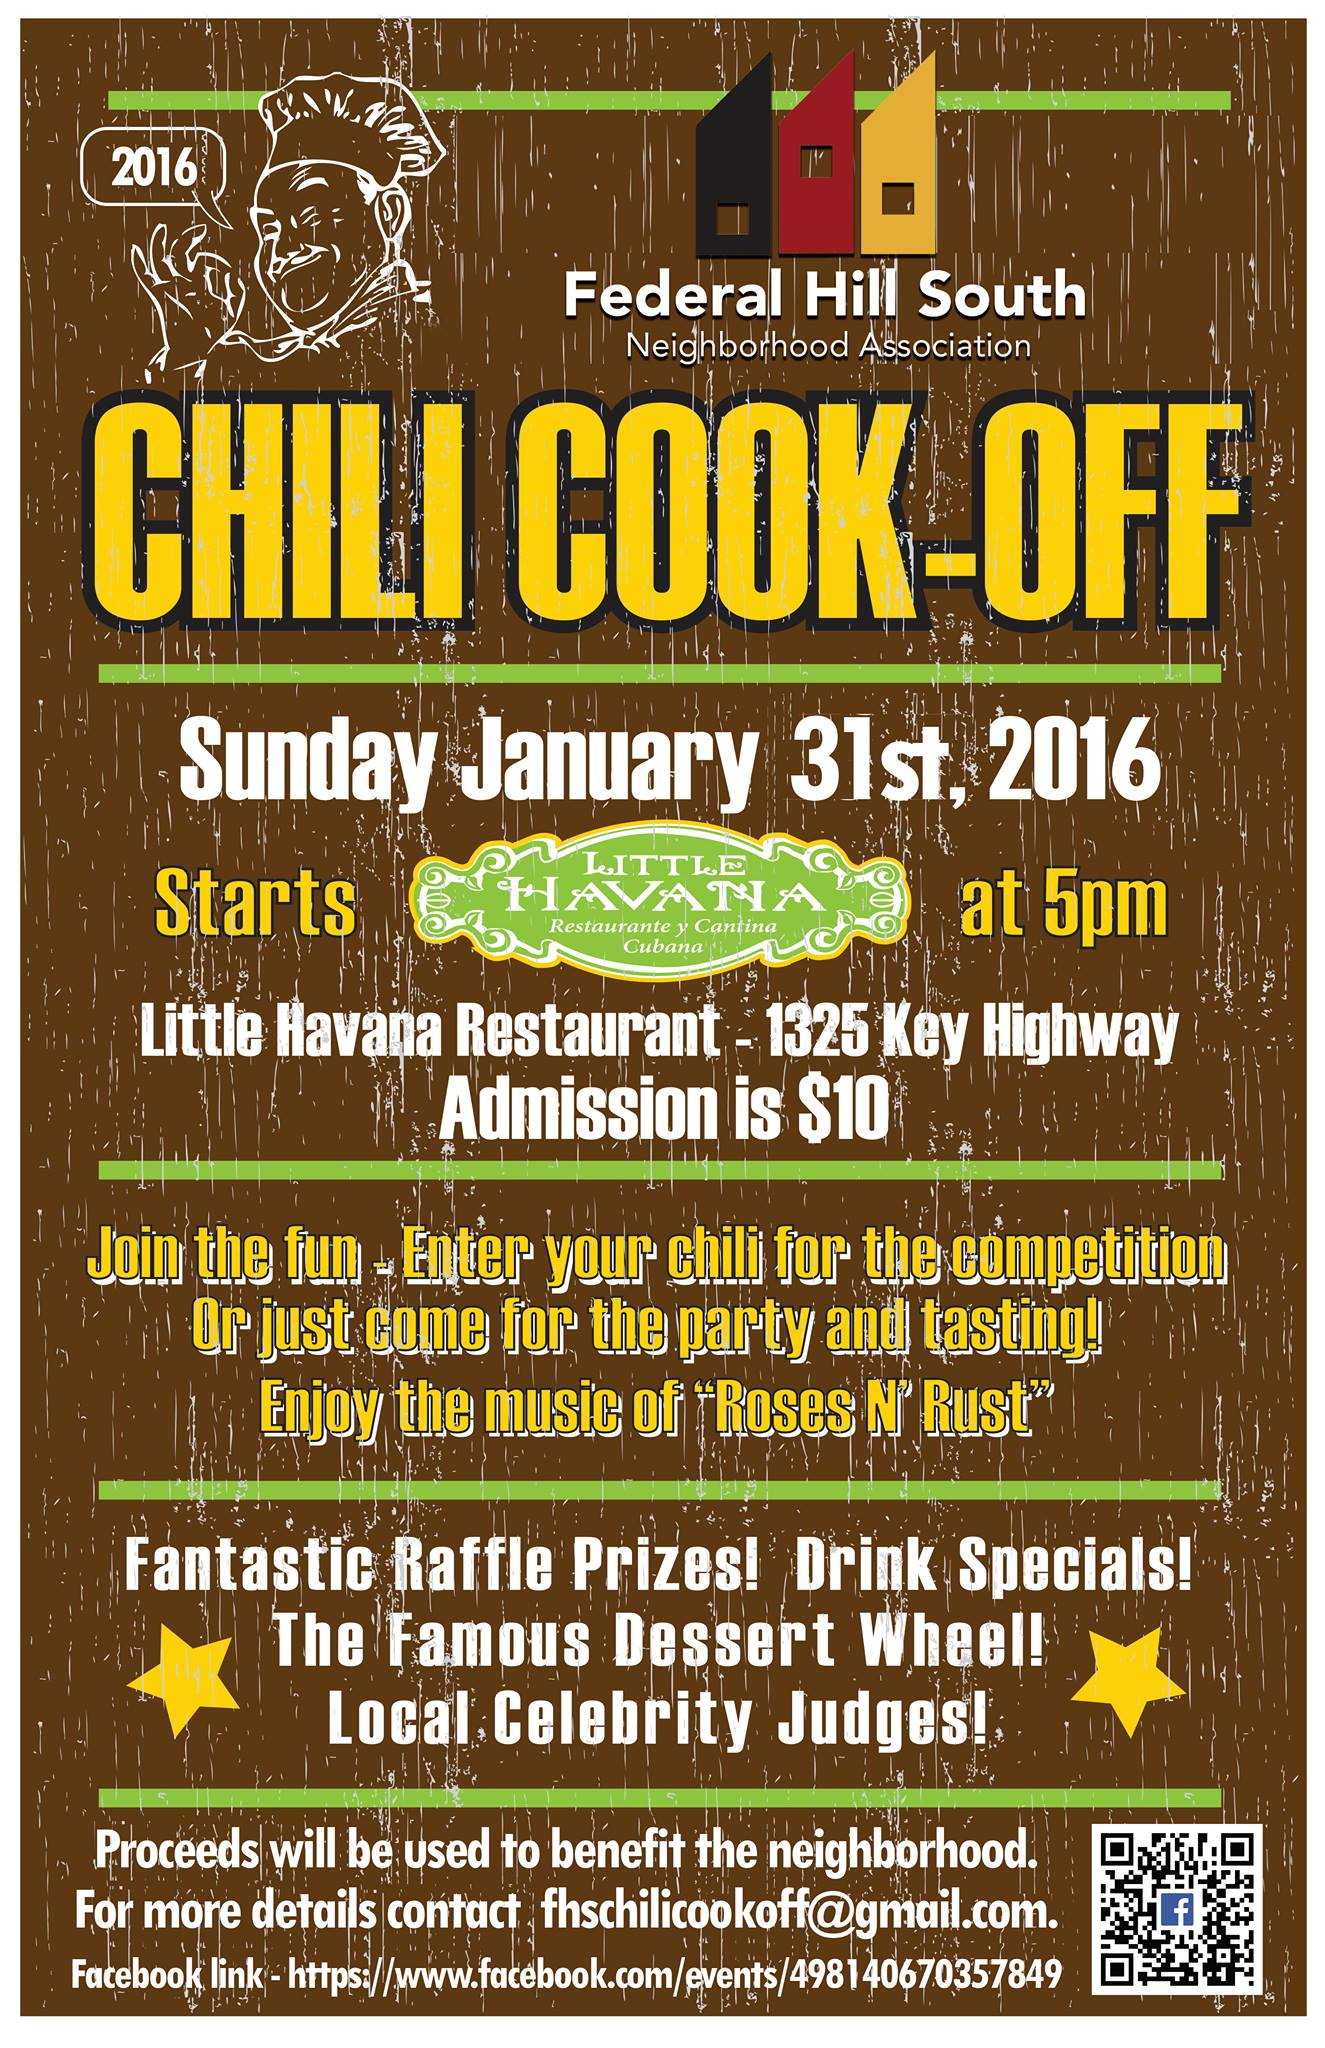 federal hill south chili cook off 2016 poster